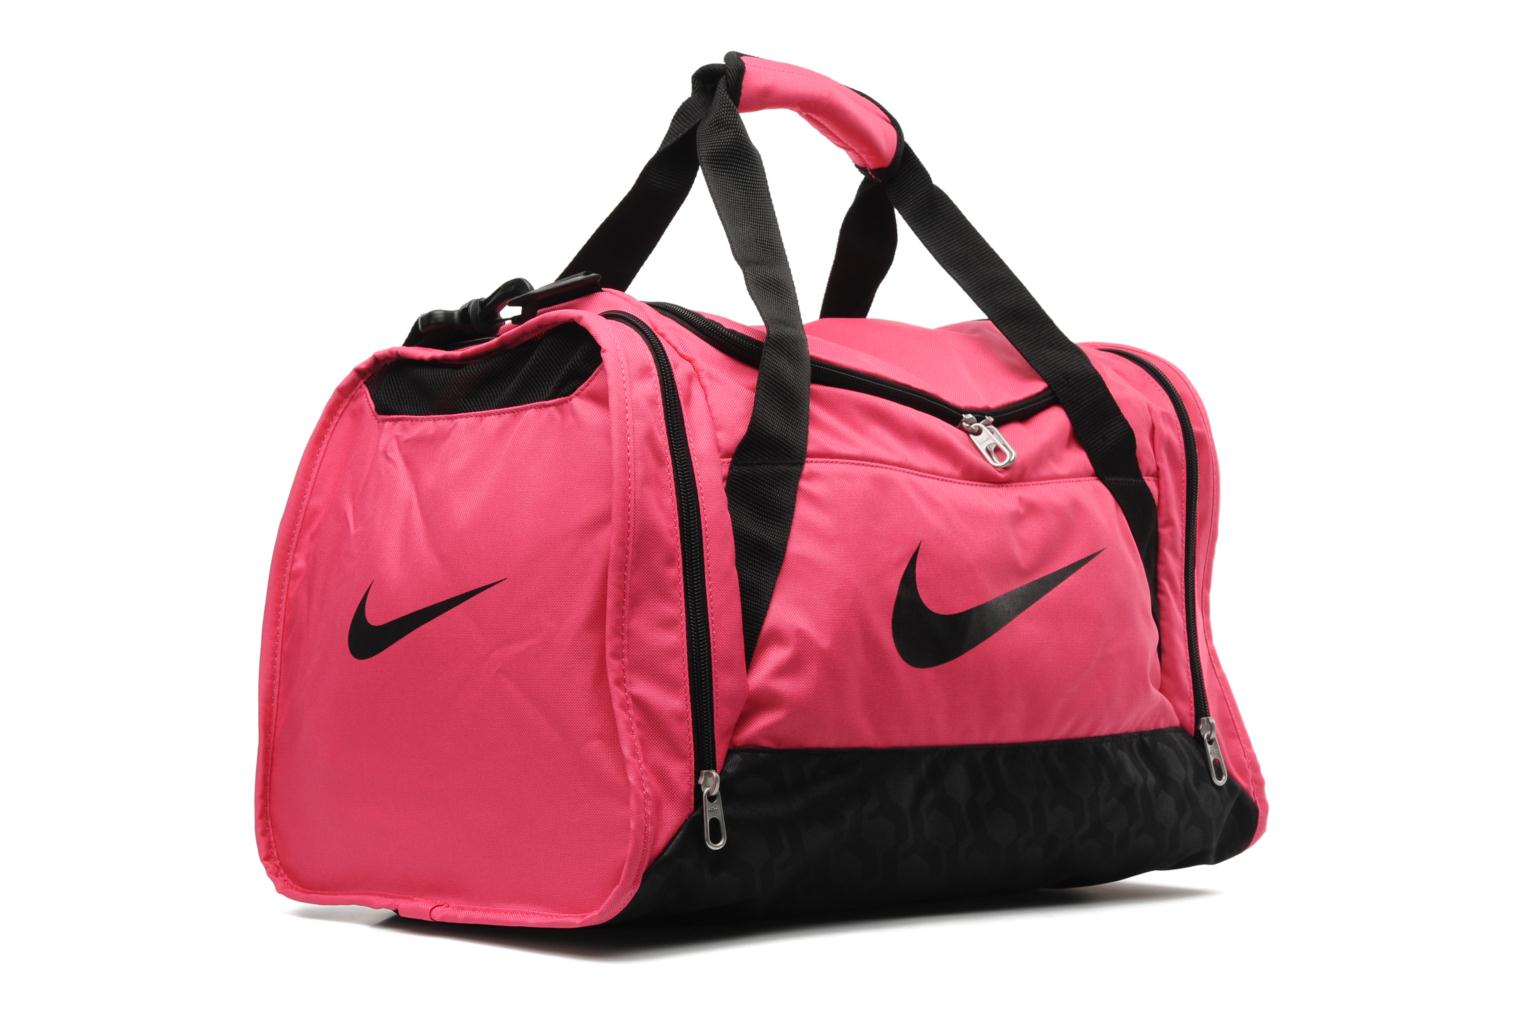 nike womens brazilia duffle s sports bags in pink at. Black Bedroom Furniture Sets. Home Design Ideas